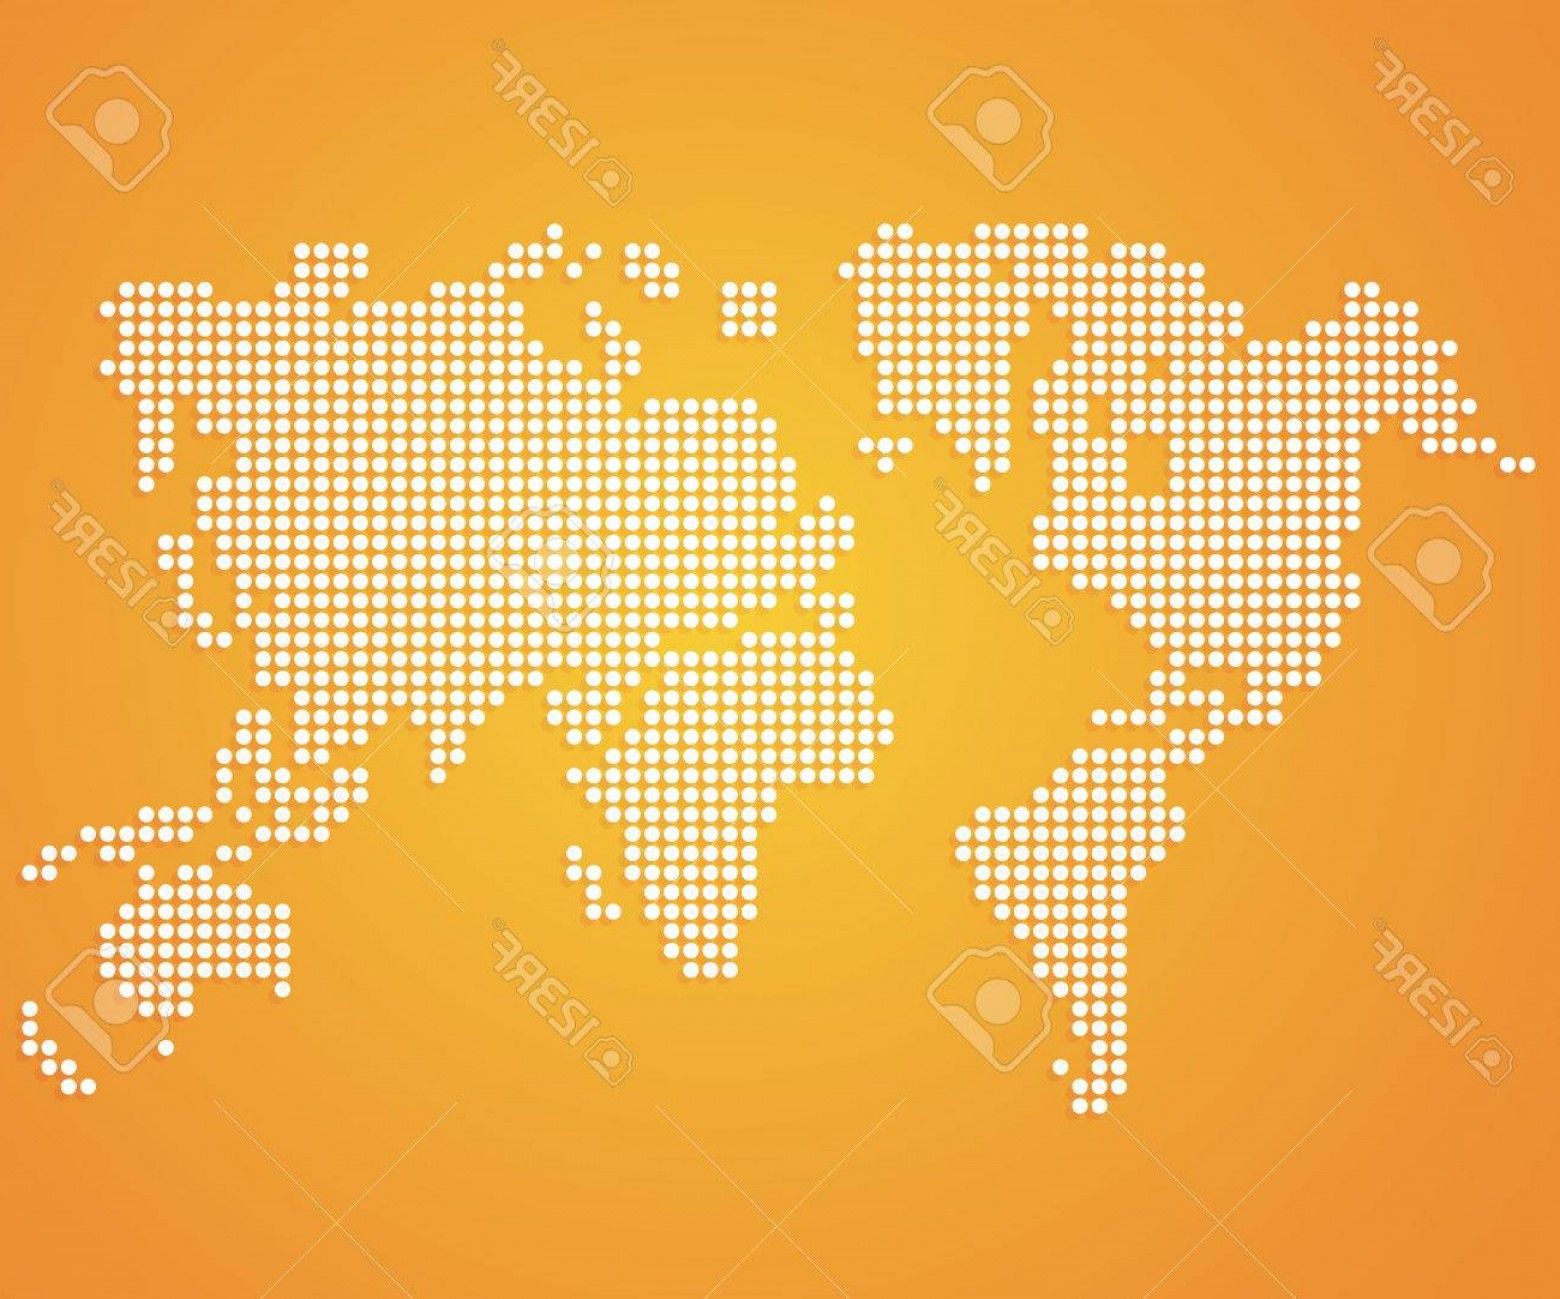 BG Vector Map: Photostock Vector Dot World Maps And Globes On Orange Color Background Vector